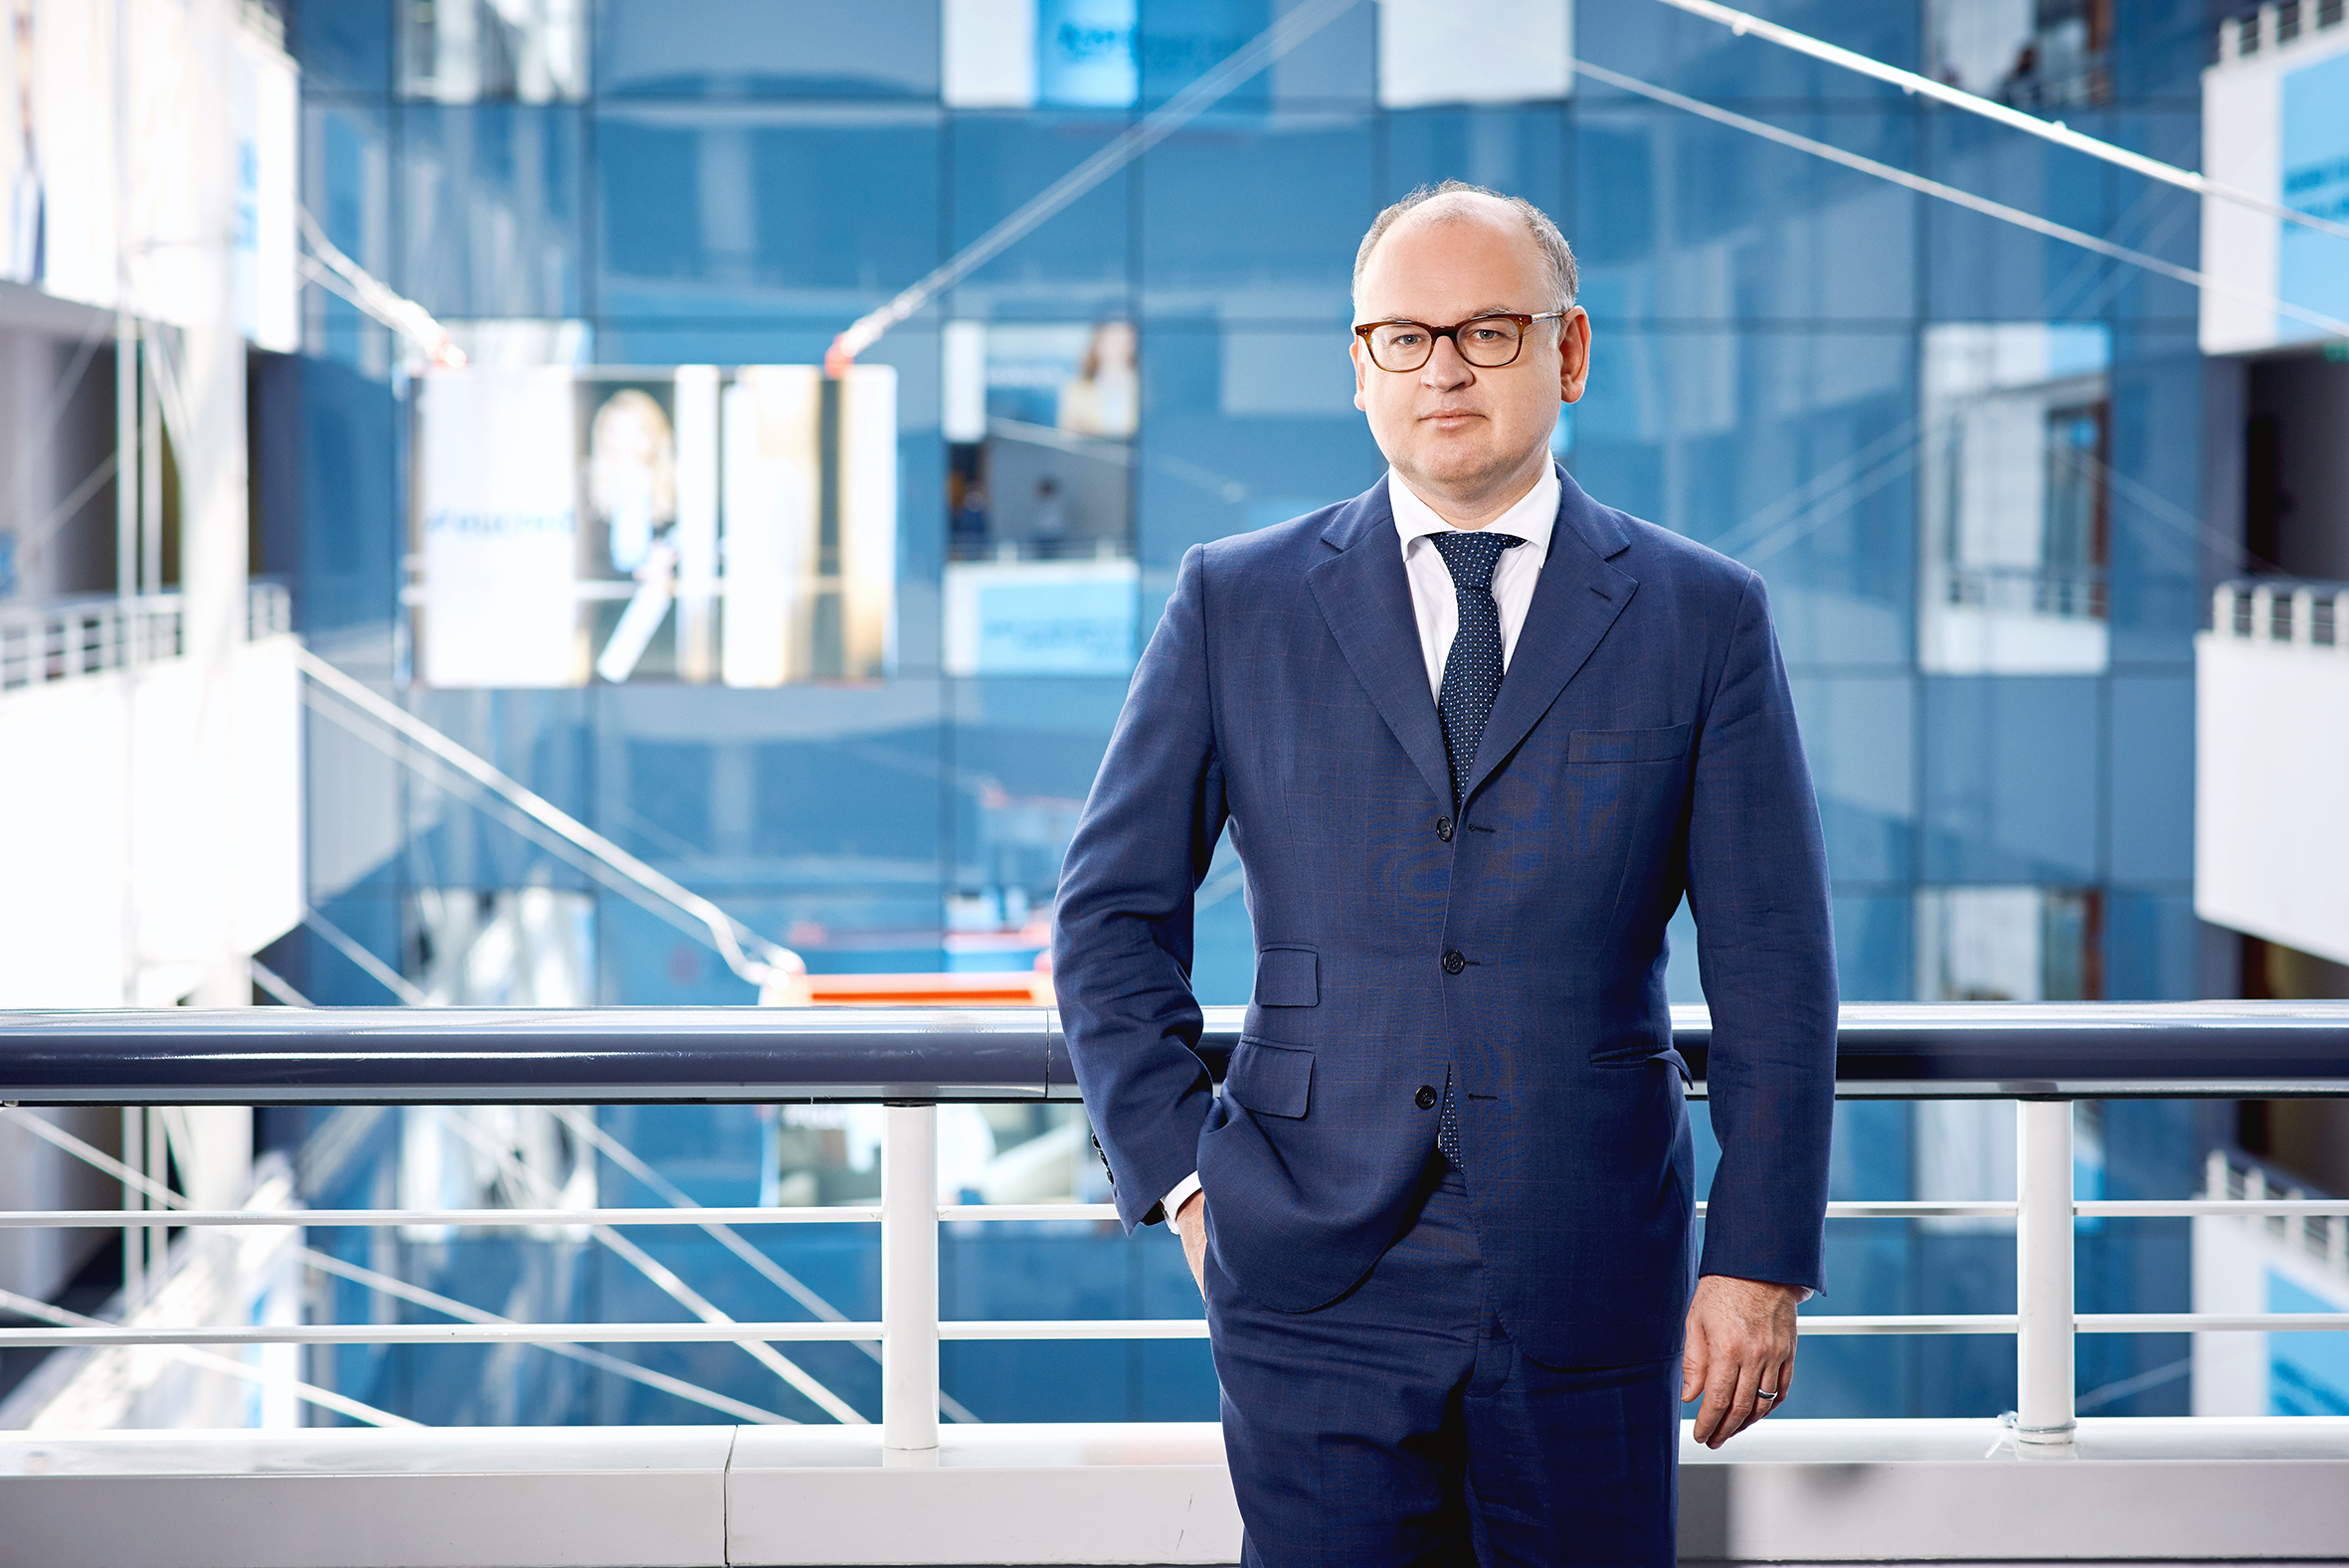 Bernhard Spalt to succeed Andreas Treichl as CEO from January 2020